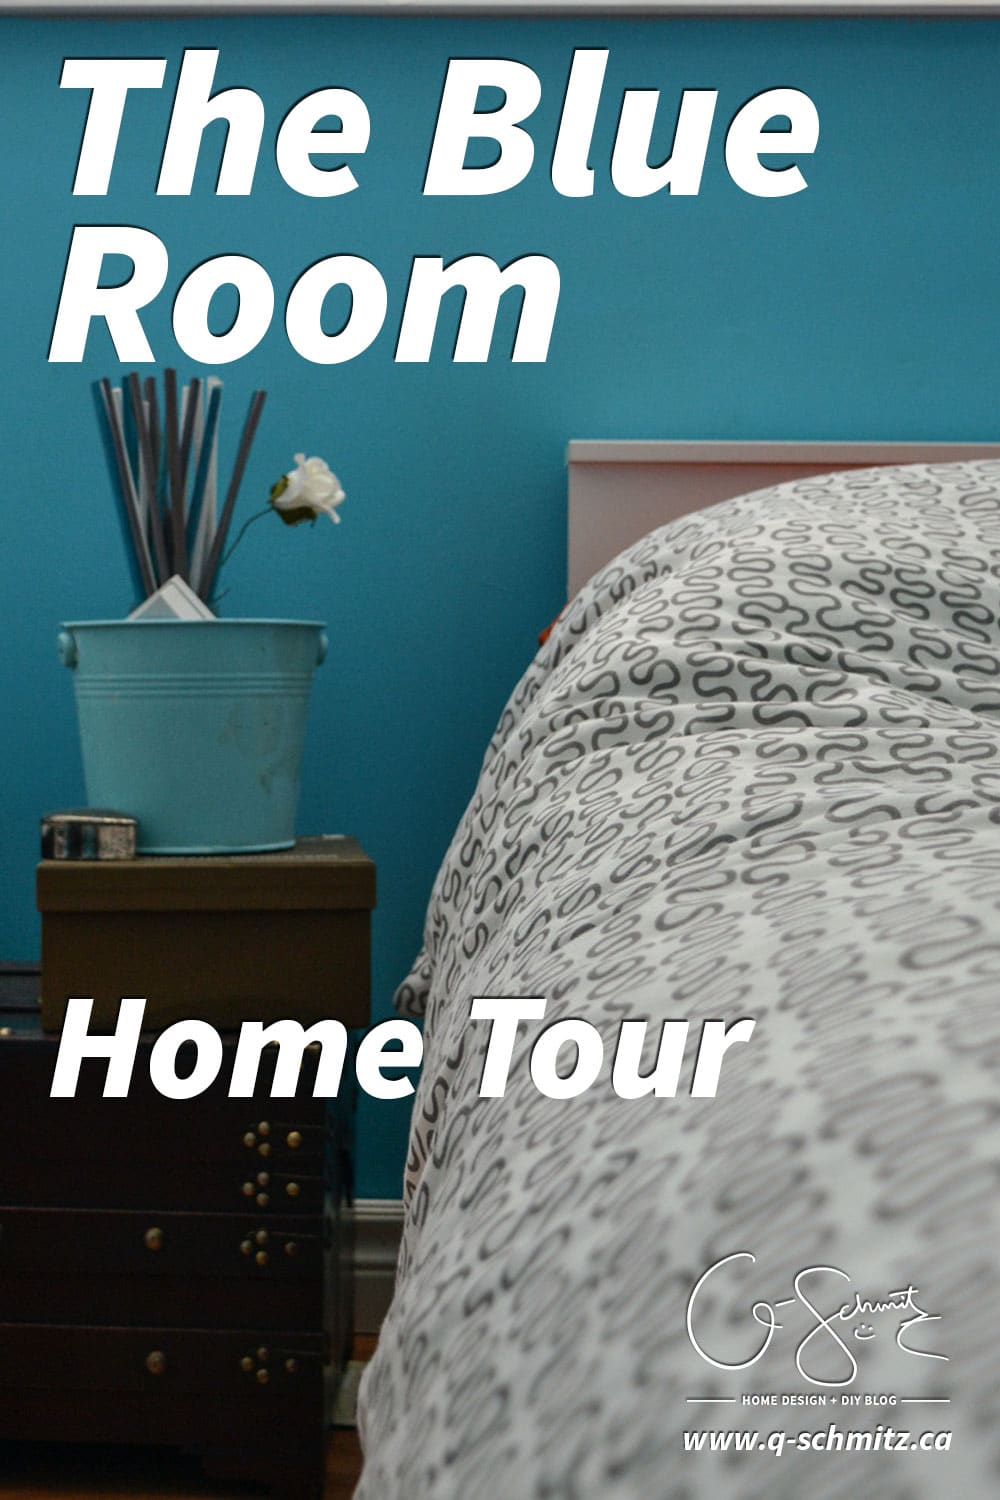 We use The Blue Room as a guest bedroom; and although I don't think the bright colour is very calming, at least our guests won't have any problems waking?